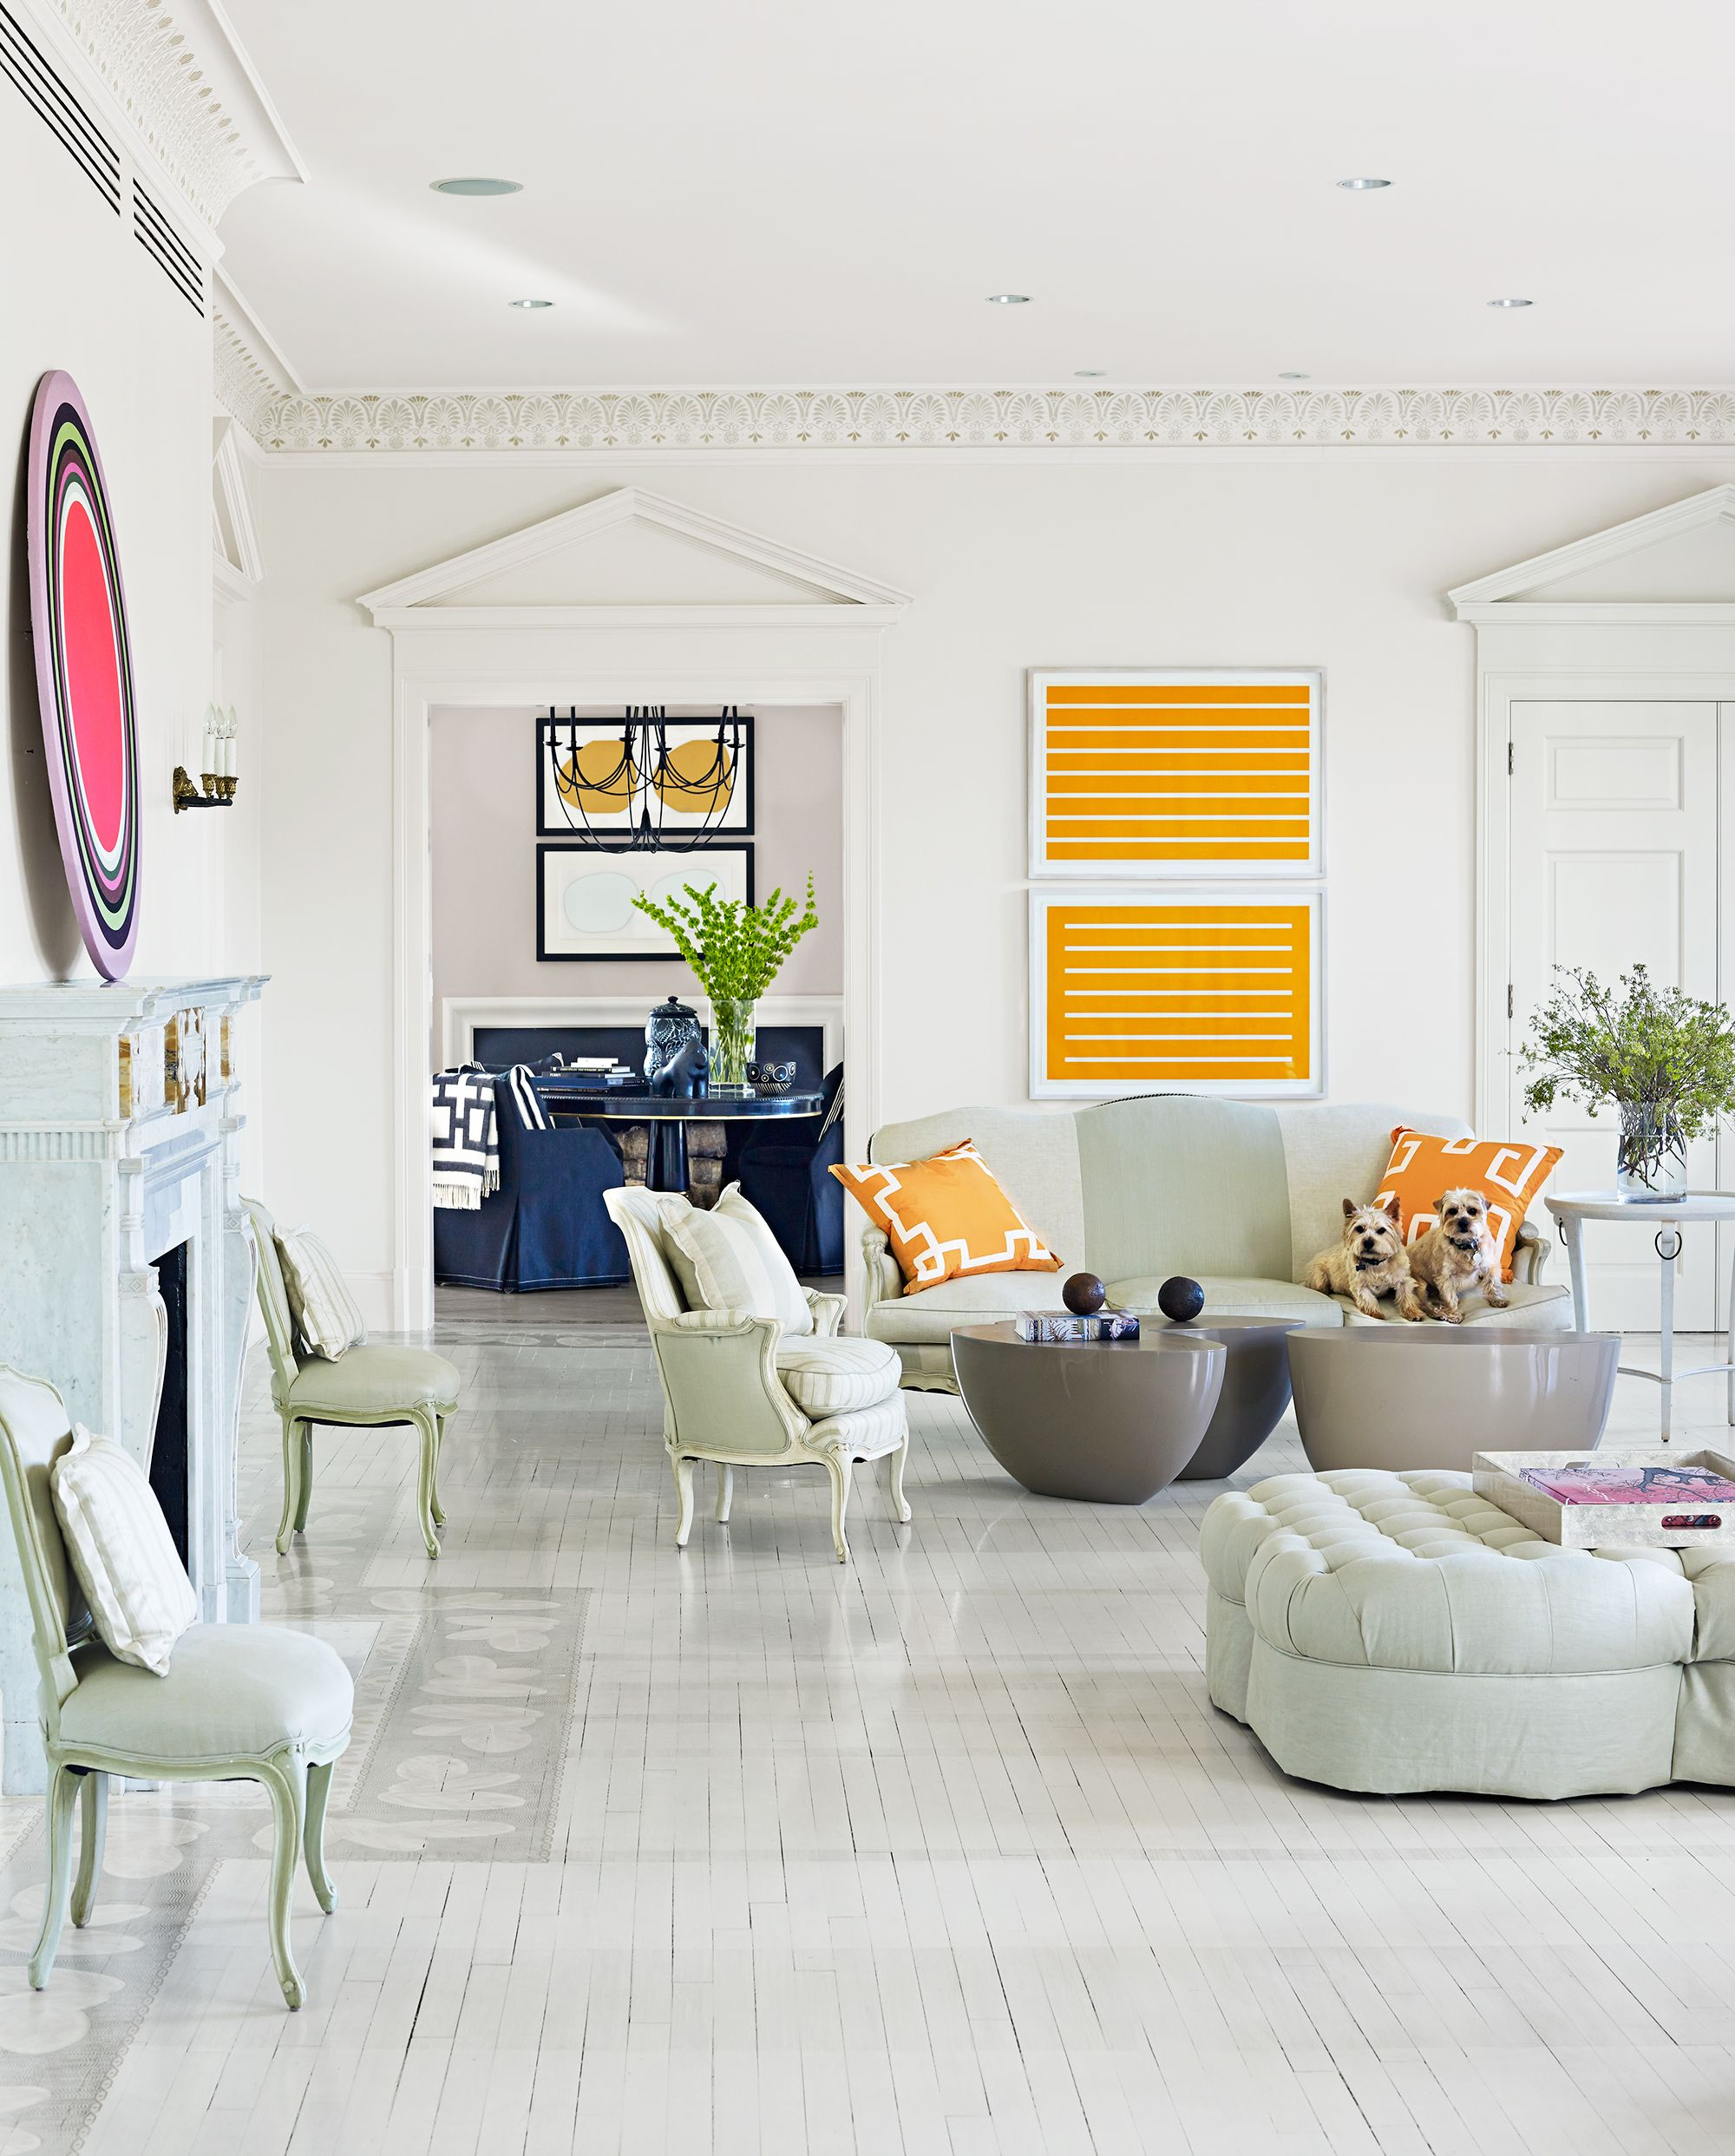 26 White Living Room Ideas Decor For, White Living Rooms Pictures